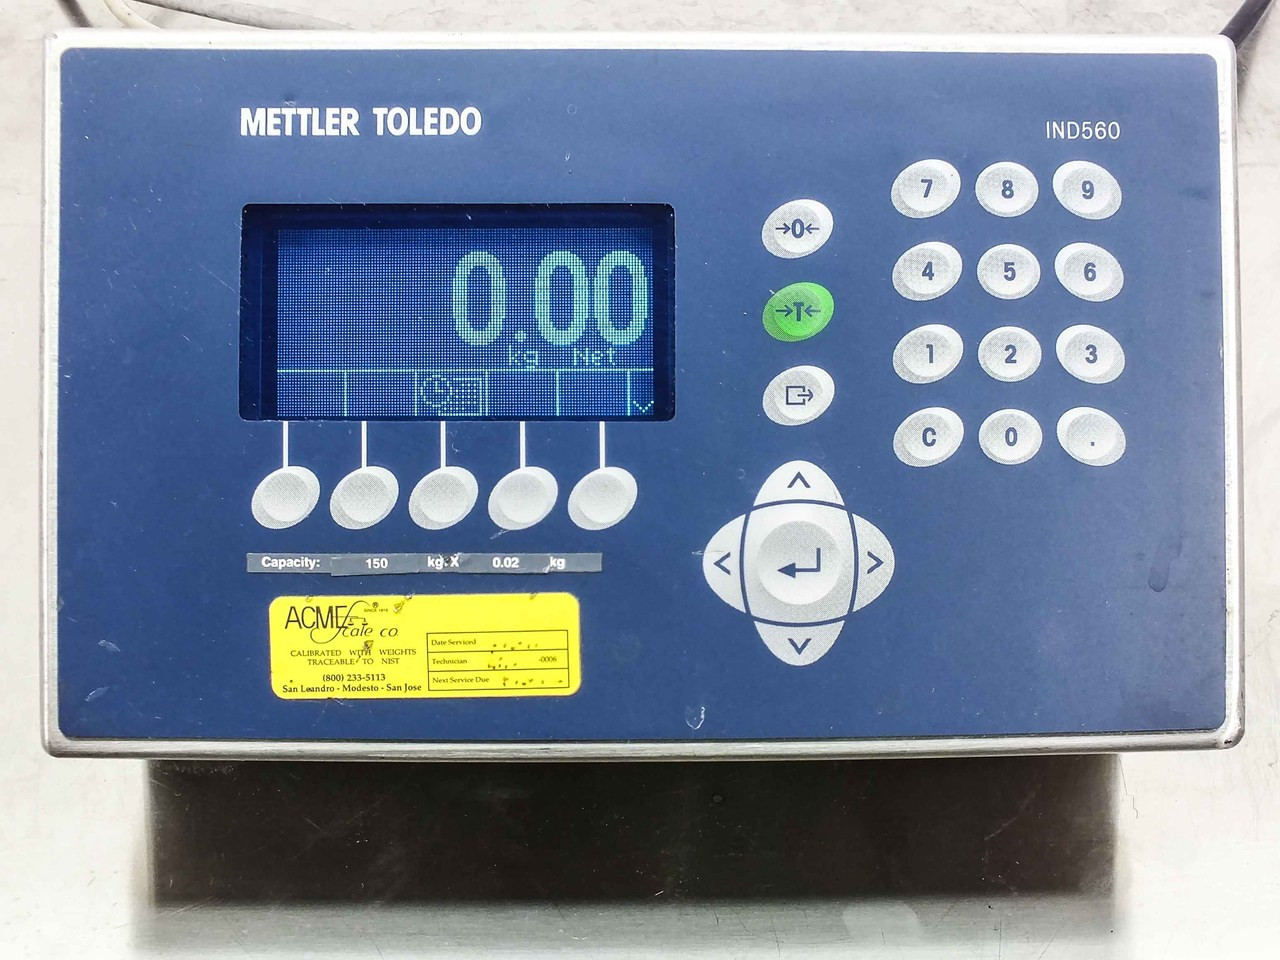 Mettler Toledo IND560 HARSH Digital Weighing Terminal (Scale Not Included)